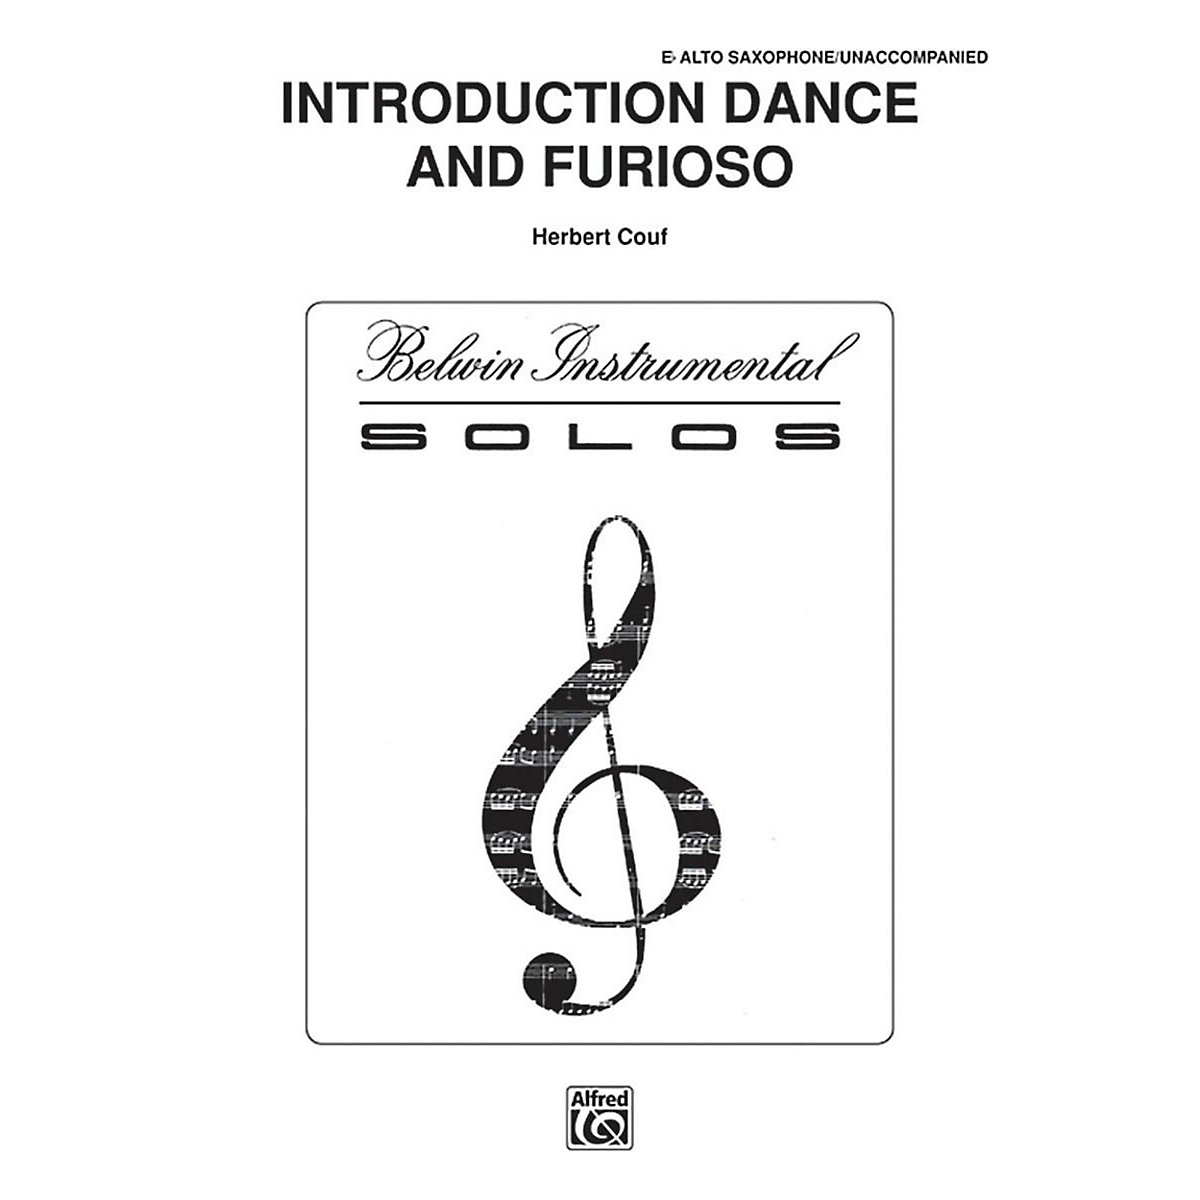 Amazon Com Alfred Introduction Dance And Furioso For Alto Sax By